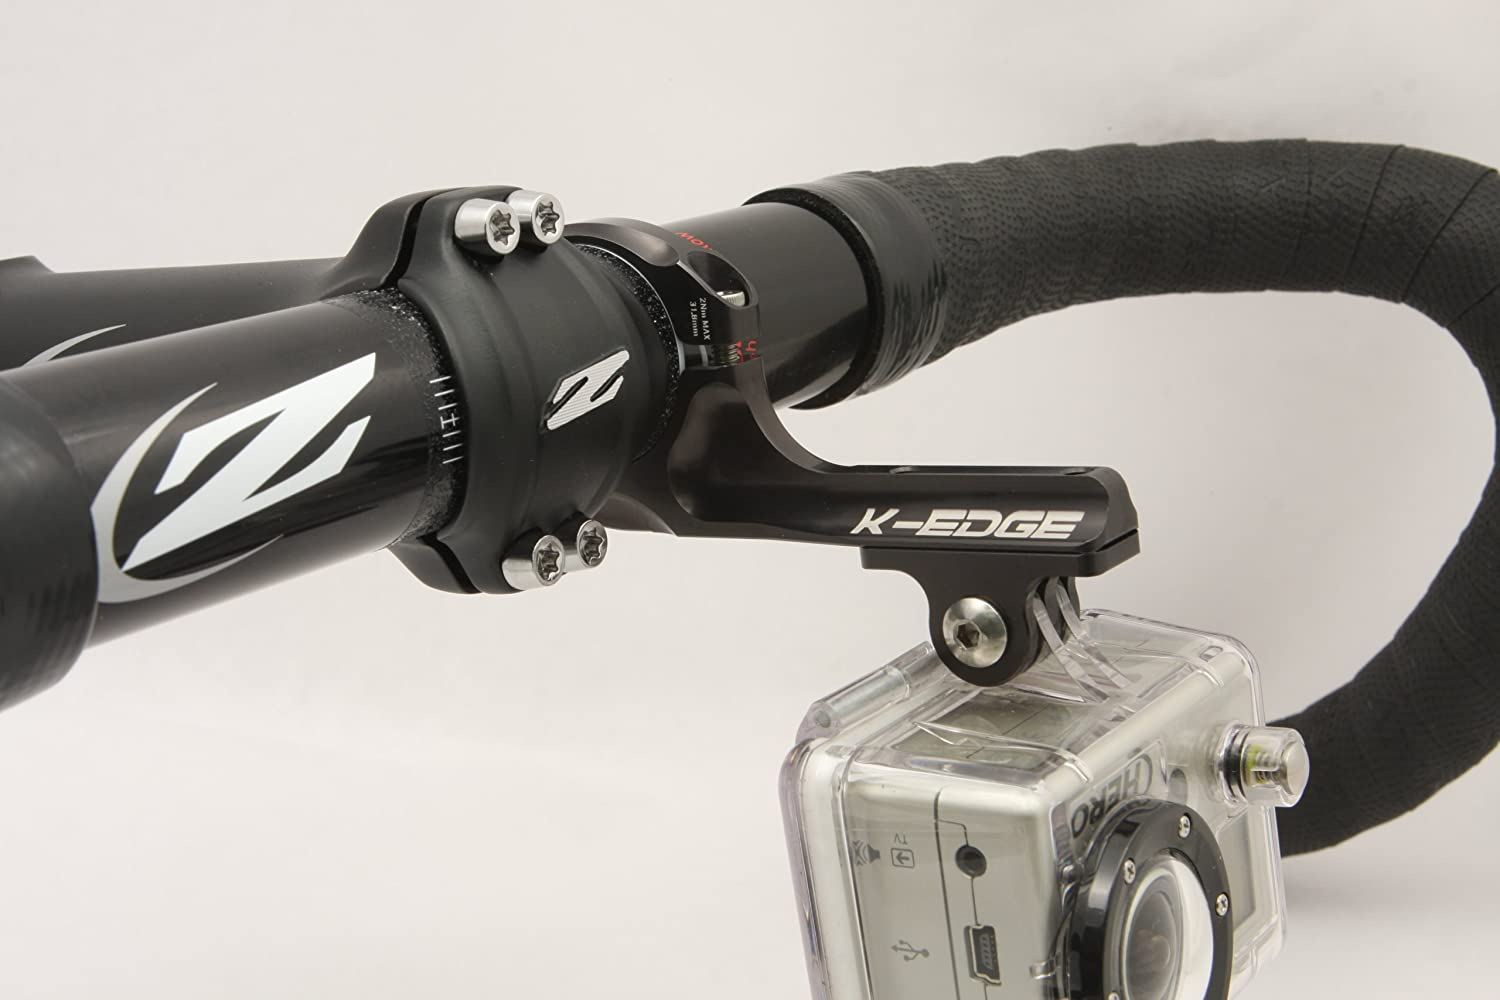 NEW K-EDGE GO BIG Pro Handlebar Mount for GoPro Hero